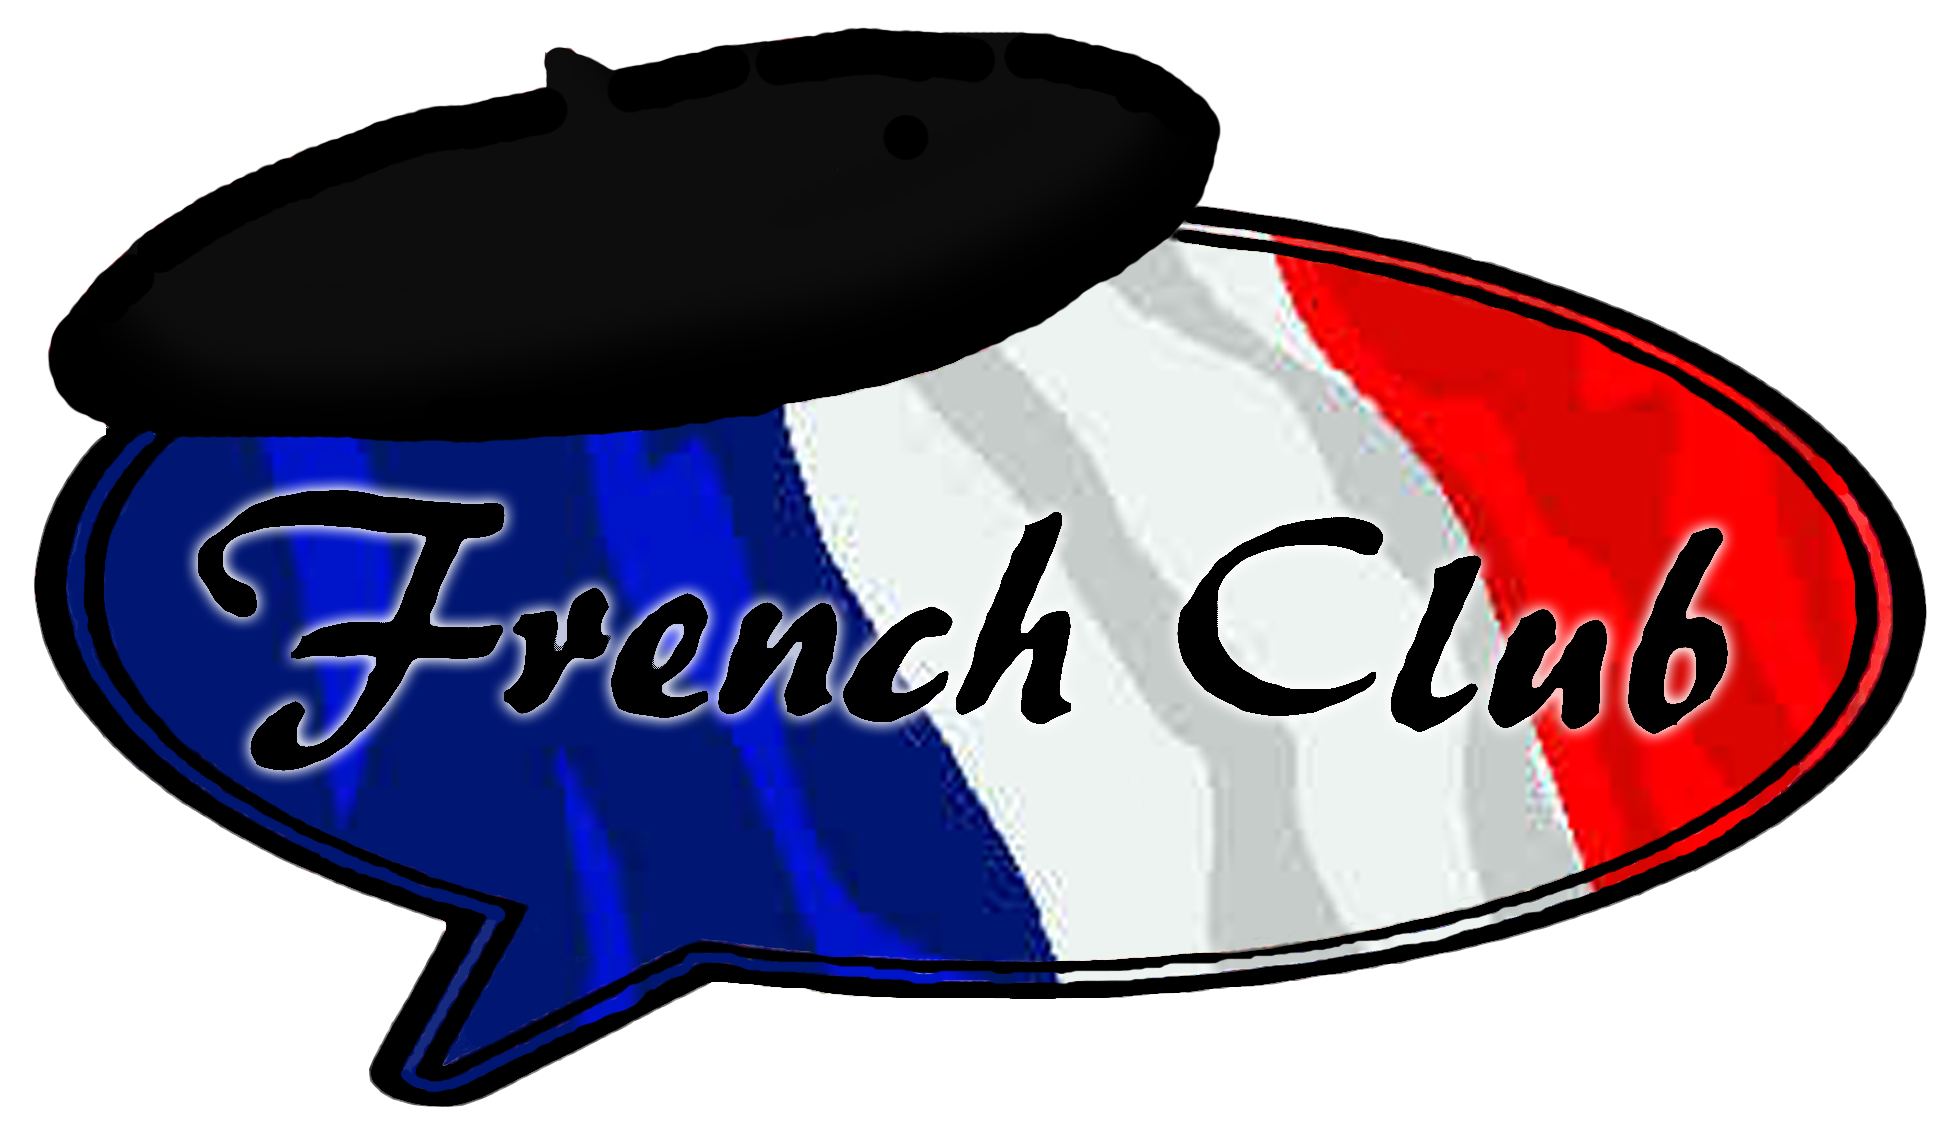 Course extra curricular activities. France clipart village french